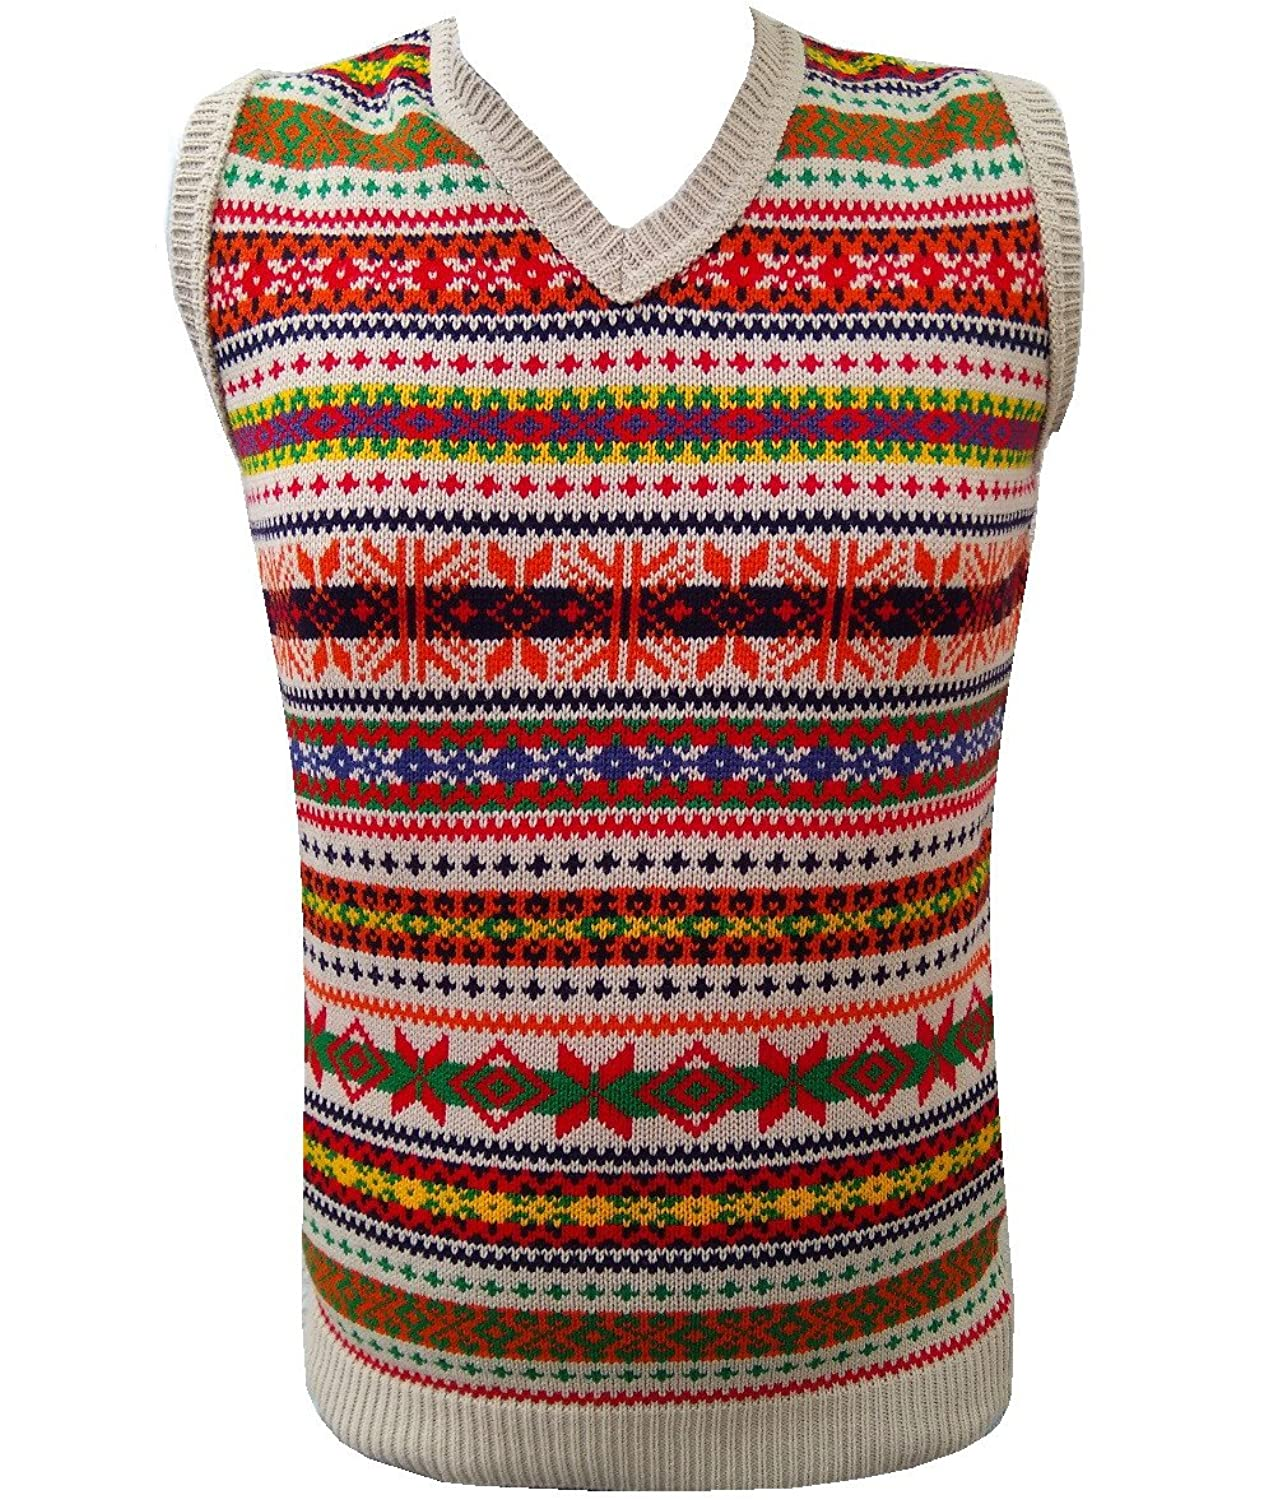 Men's Vintage Sweaters, Retro Jumpers 1920s to 1980s London Knitwear Gallery Retro Vintage Knitwear Tanktop Sleeveless Golf Sweater £19.99 AT vintagedancer.com